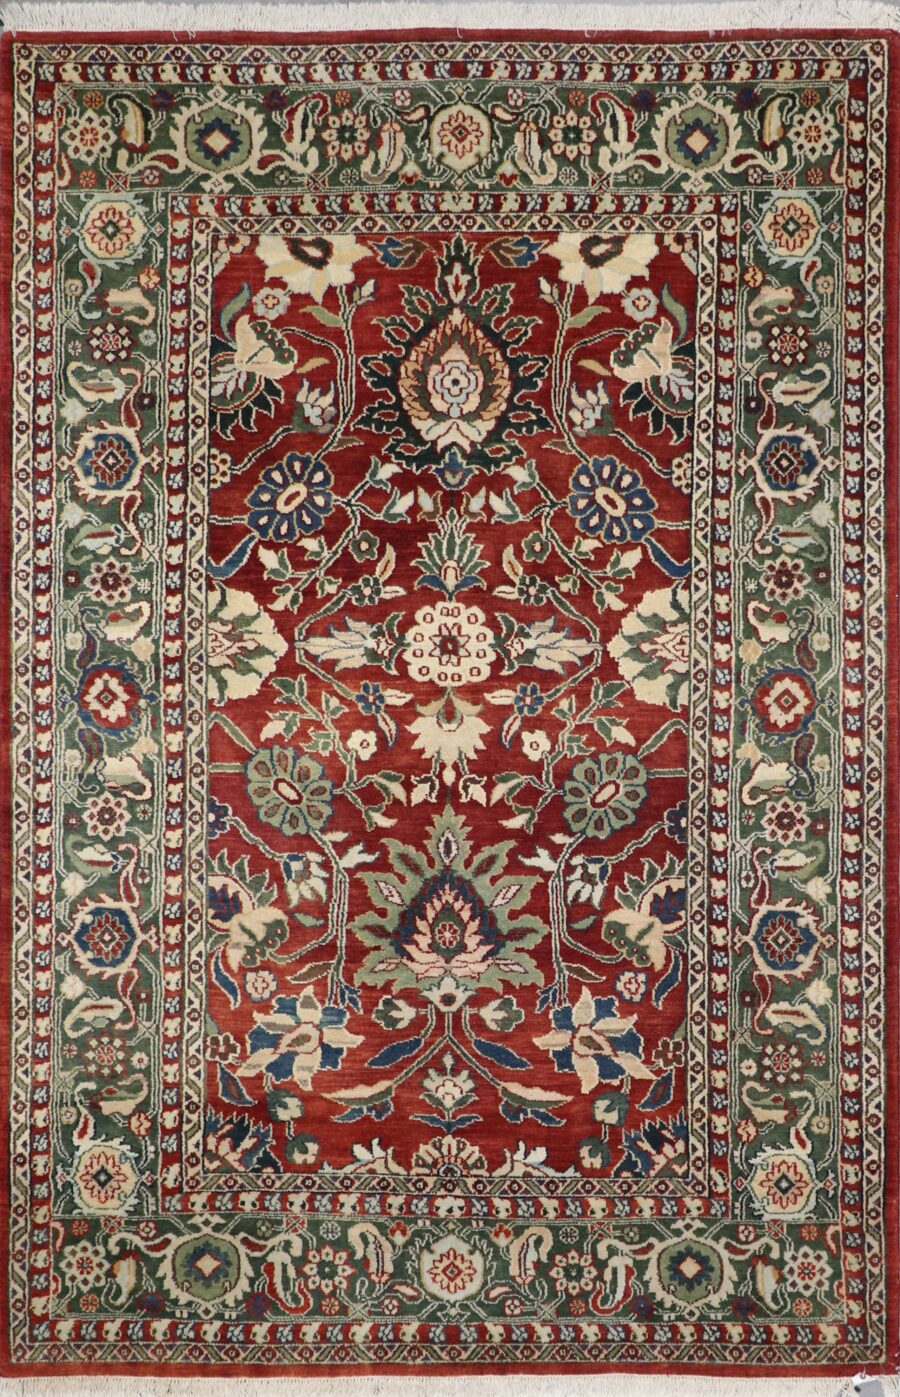 6'x9' Traditional Red Wool Hand-Knotted Rug - Direct Rug Import   Rugs in Chicago, Indiana,South Bend,Granger